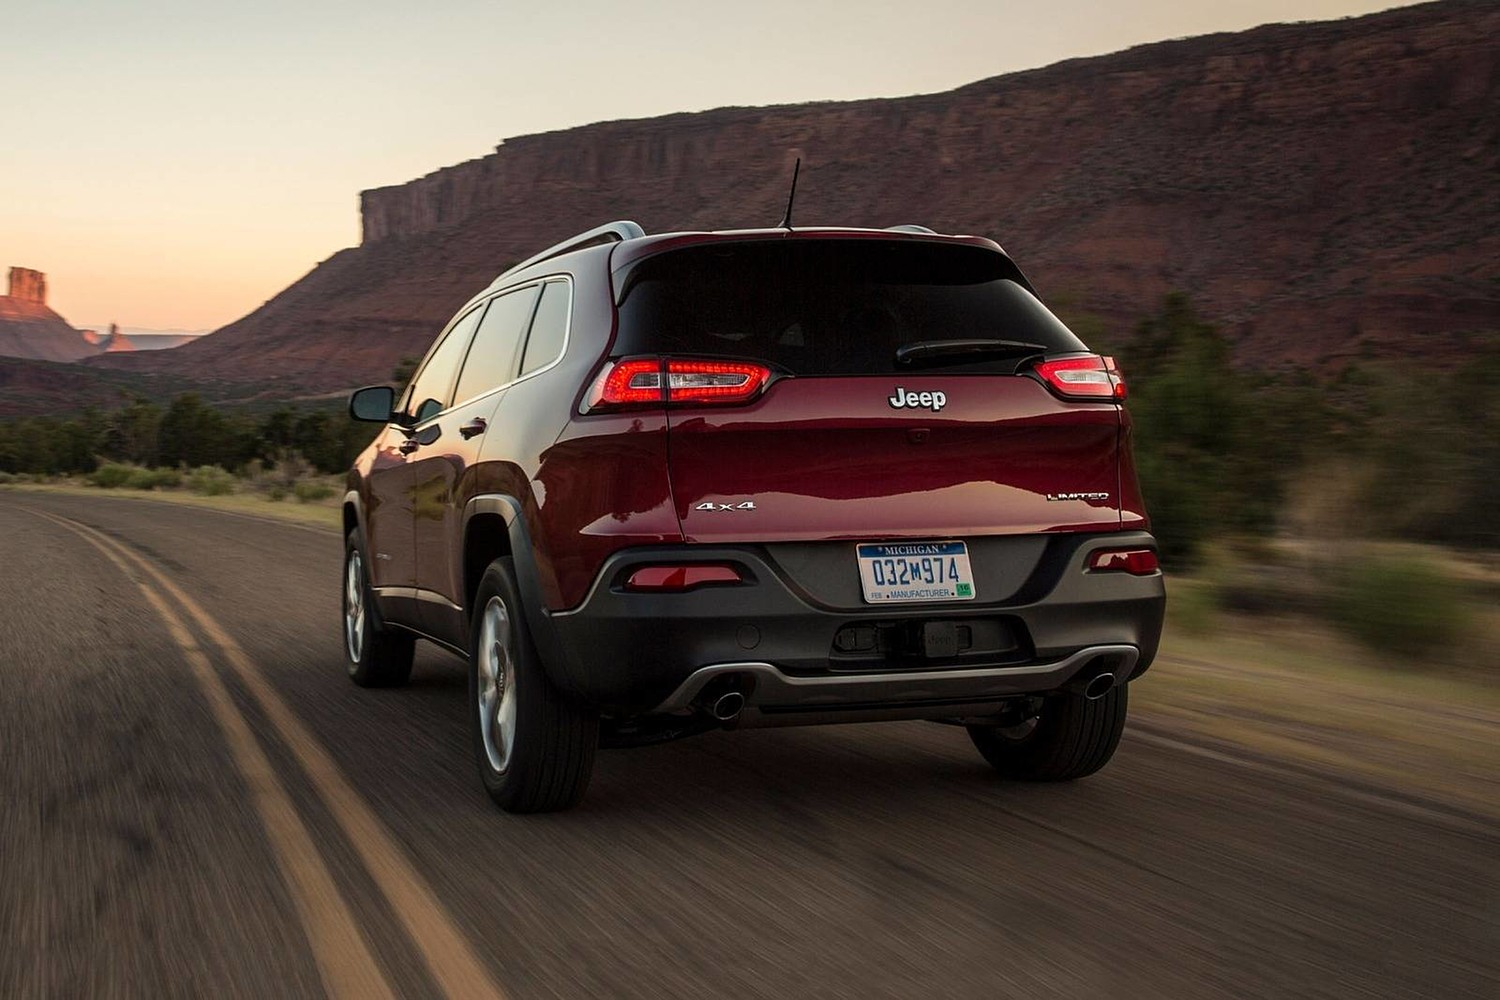 2018 Jeep Cherokee Limited 4dr SUV Exterior